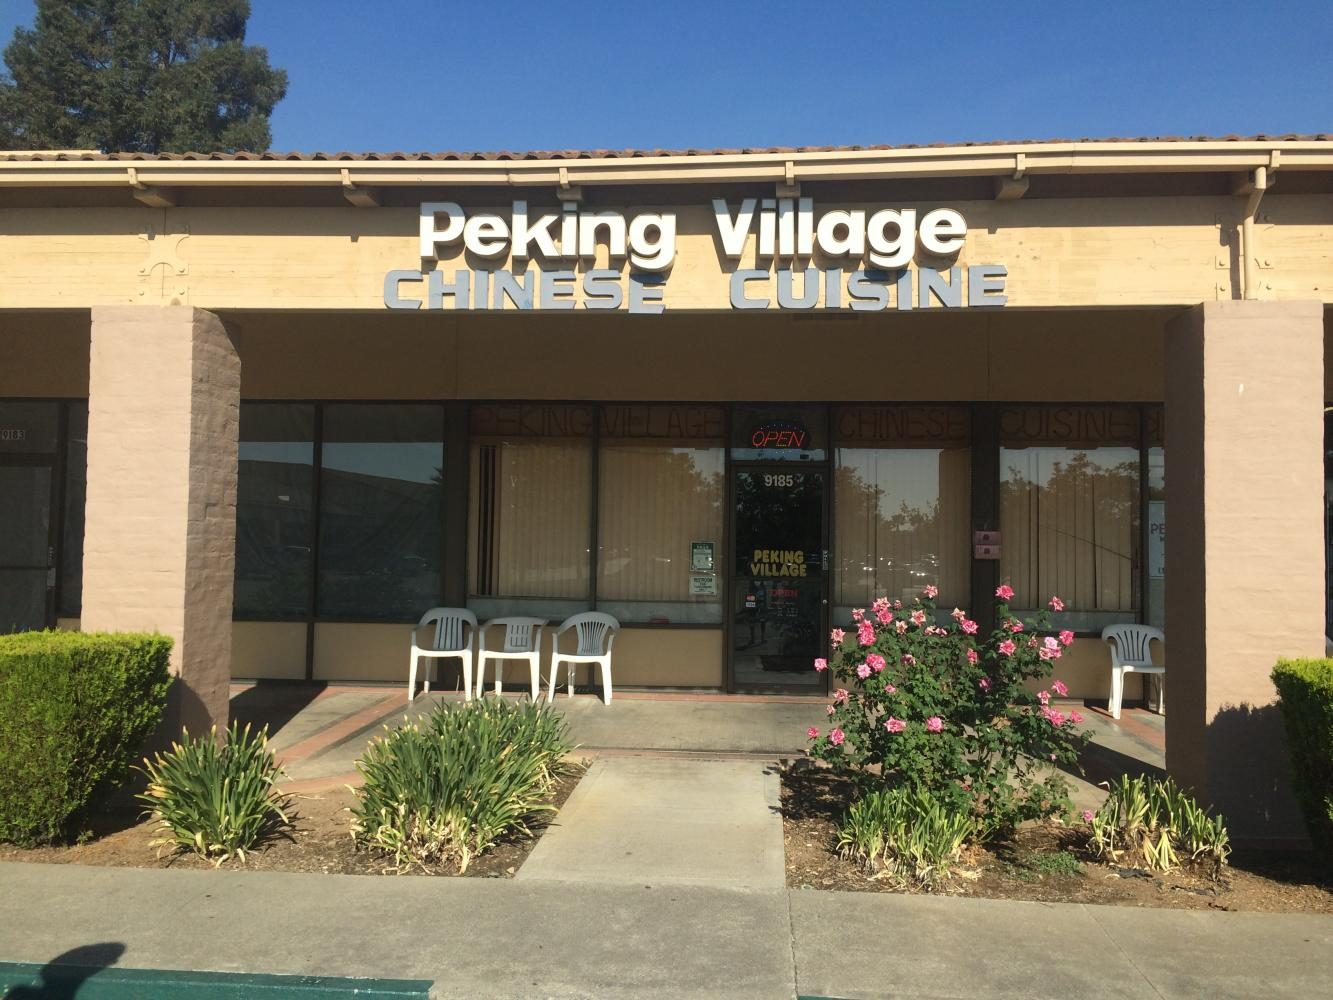 Peking+Village+is+tucked+away+behind+the+plaza.